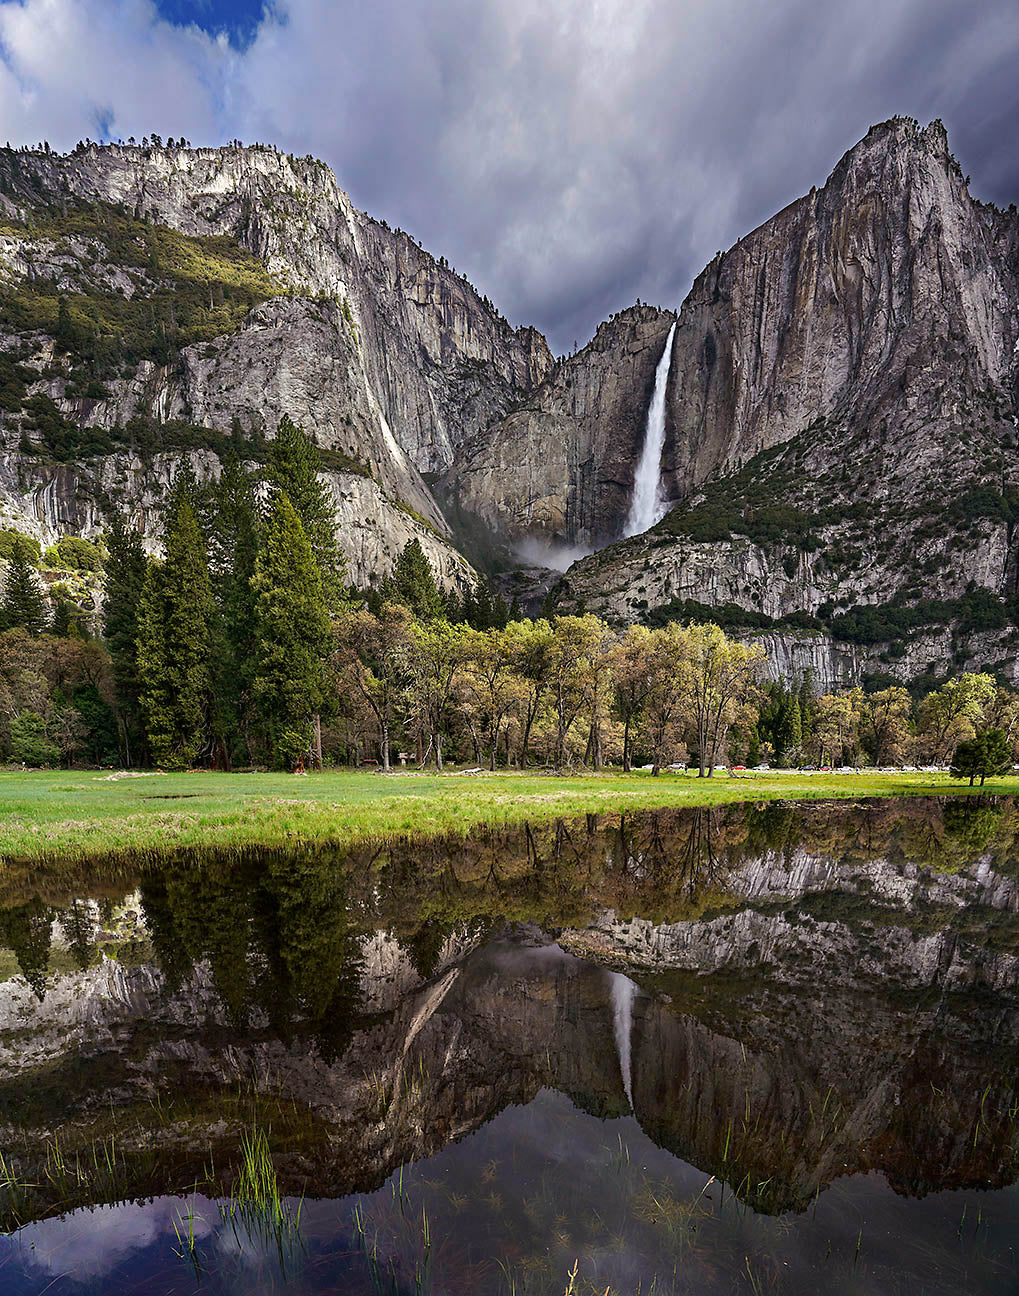 Yosemite Falls and Reflecting Pool